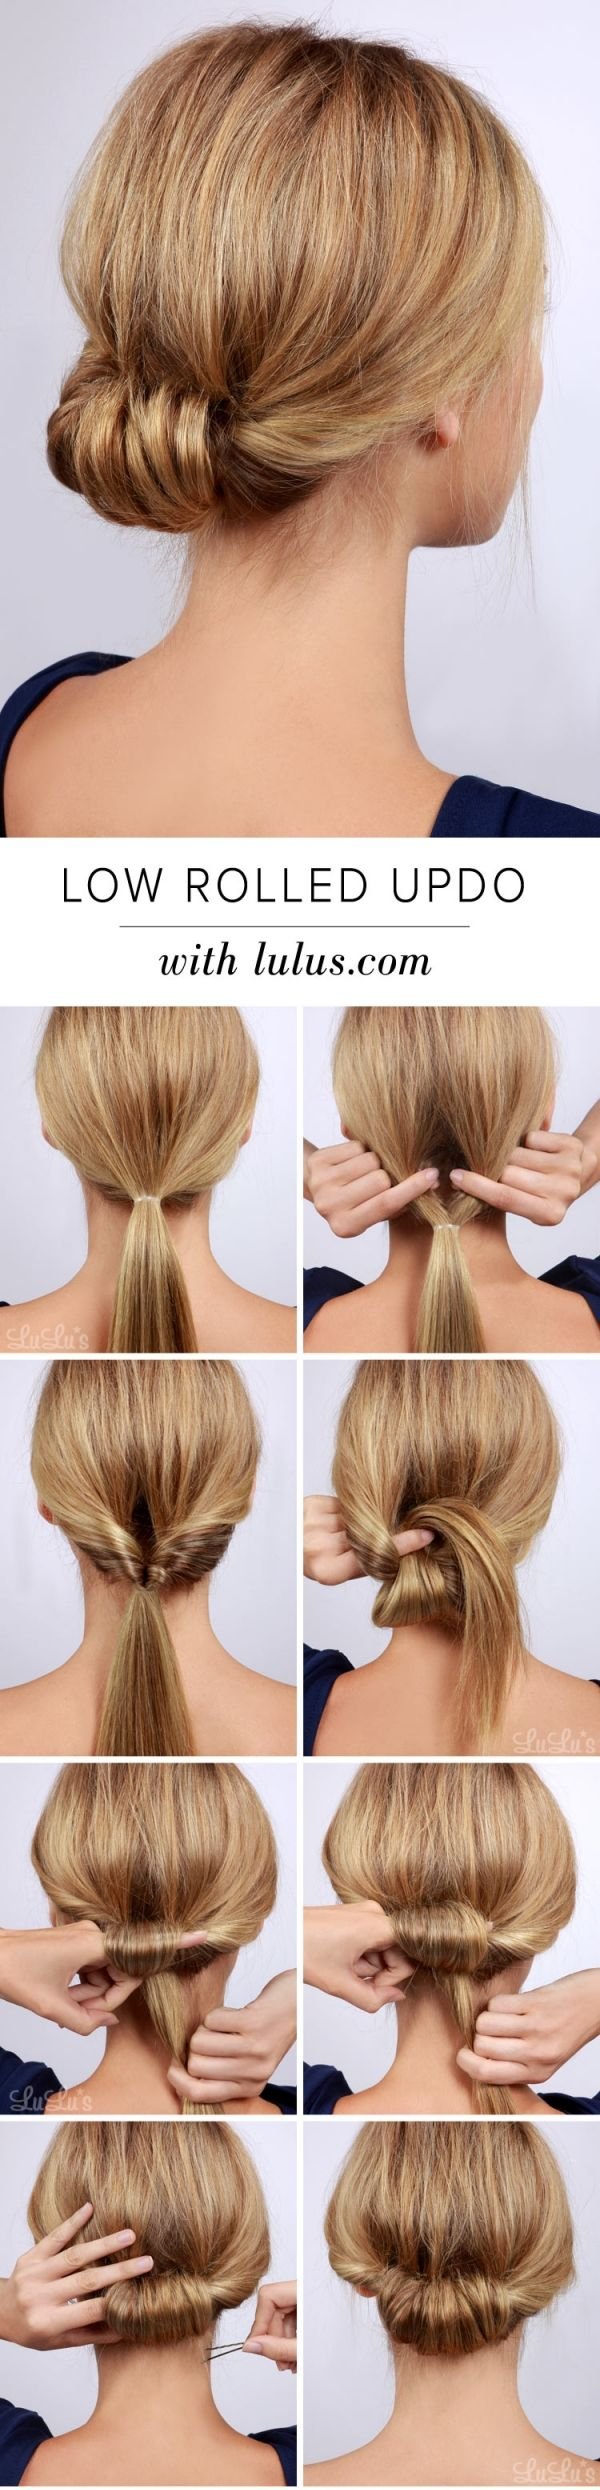 Sensational 1000 Ideas About Thick Hair Updo On Pinterest Thick Hair Short Hairstyles For Black Women Fulllsitofus